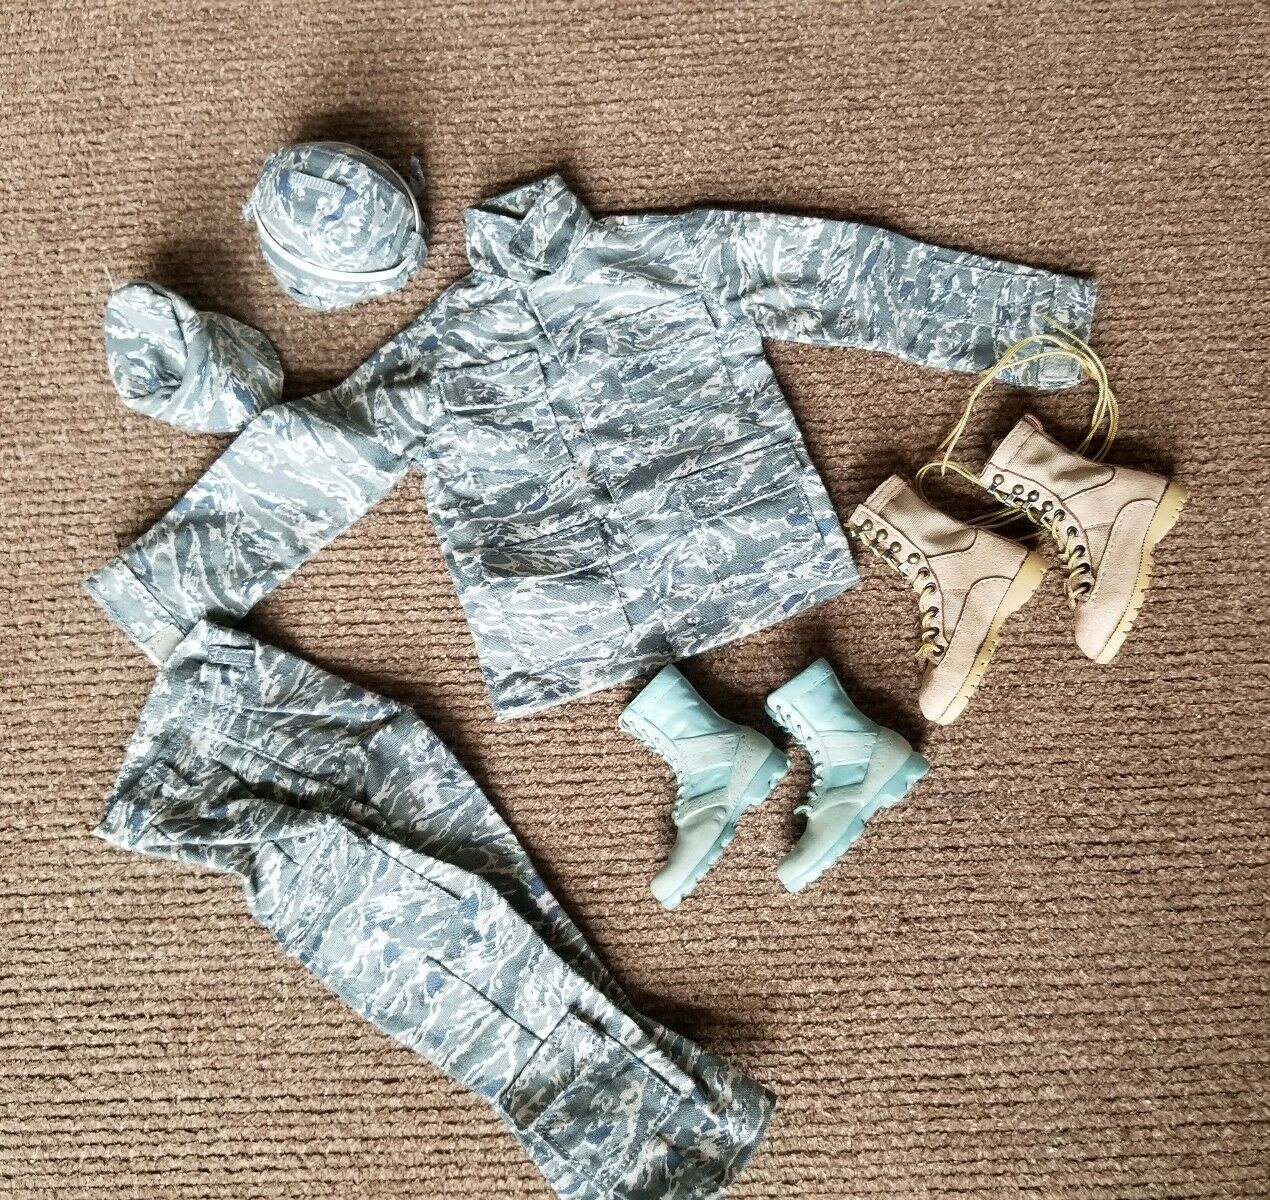 1/6 US AIRFORCE UNIFORM LOT FROM BANDIT JOES. 2 SETS A stivali, HELMET, SOFT CAP.